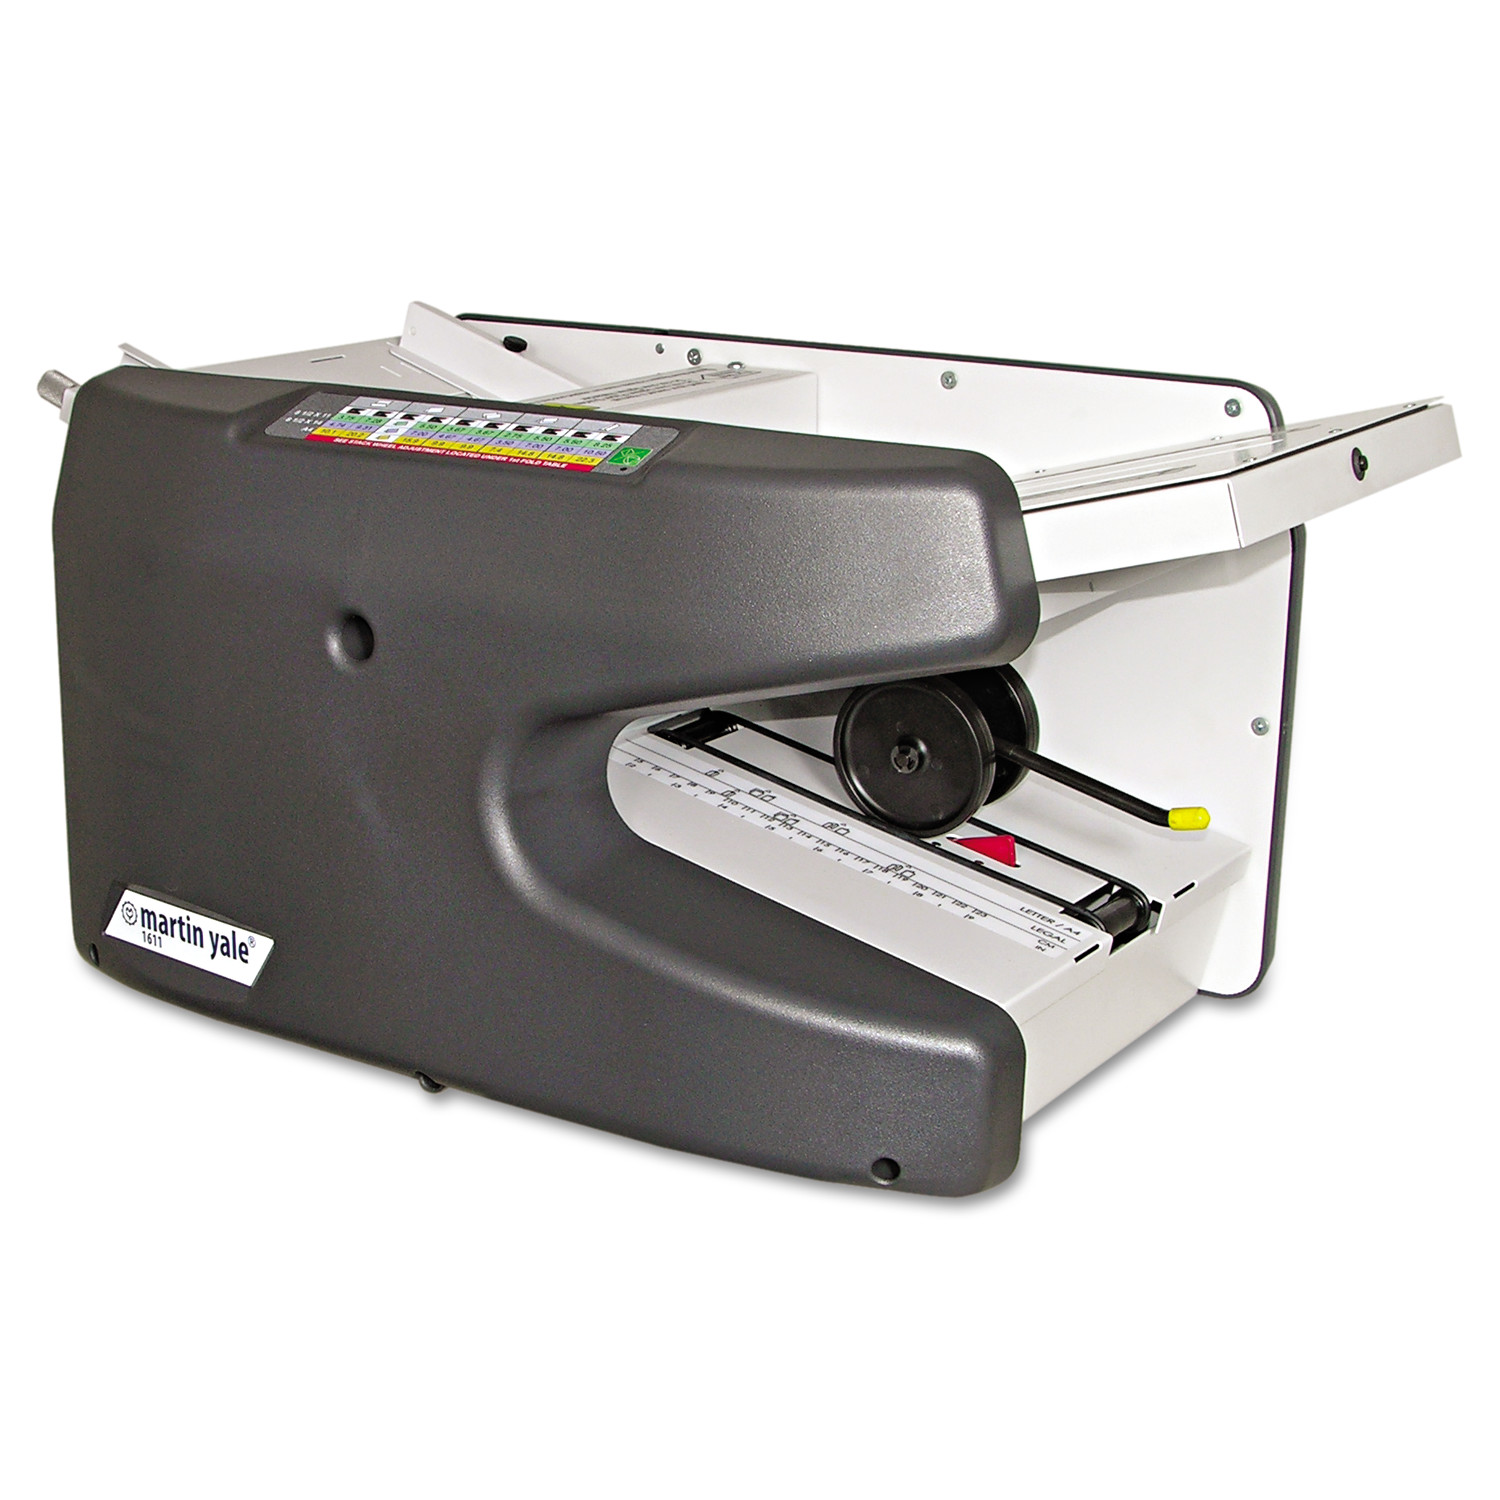 Martin Yale Model 1611 Ease-of-Use Tabletop AutoFolder, 9000 Sheets/Hour -PRE1611